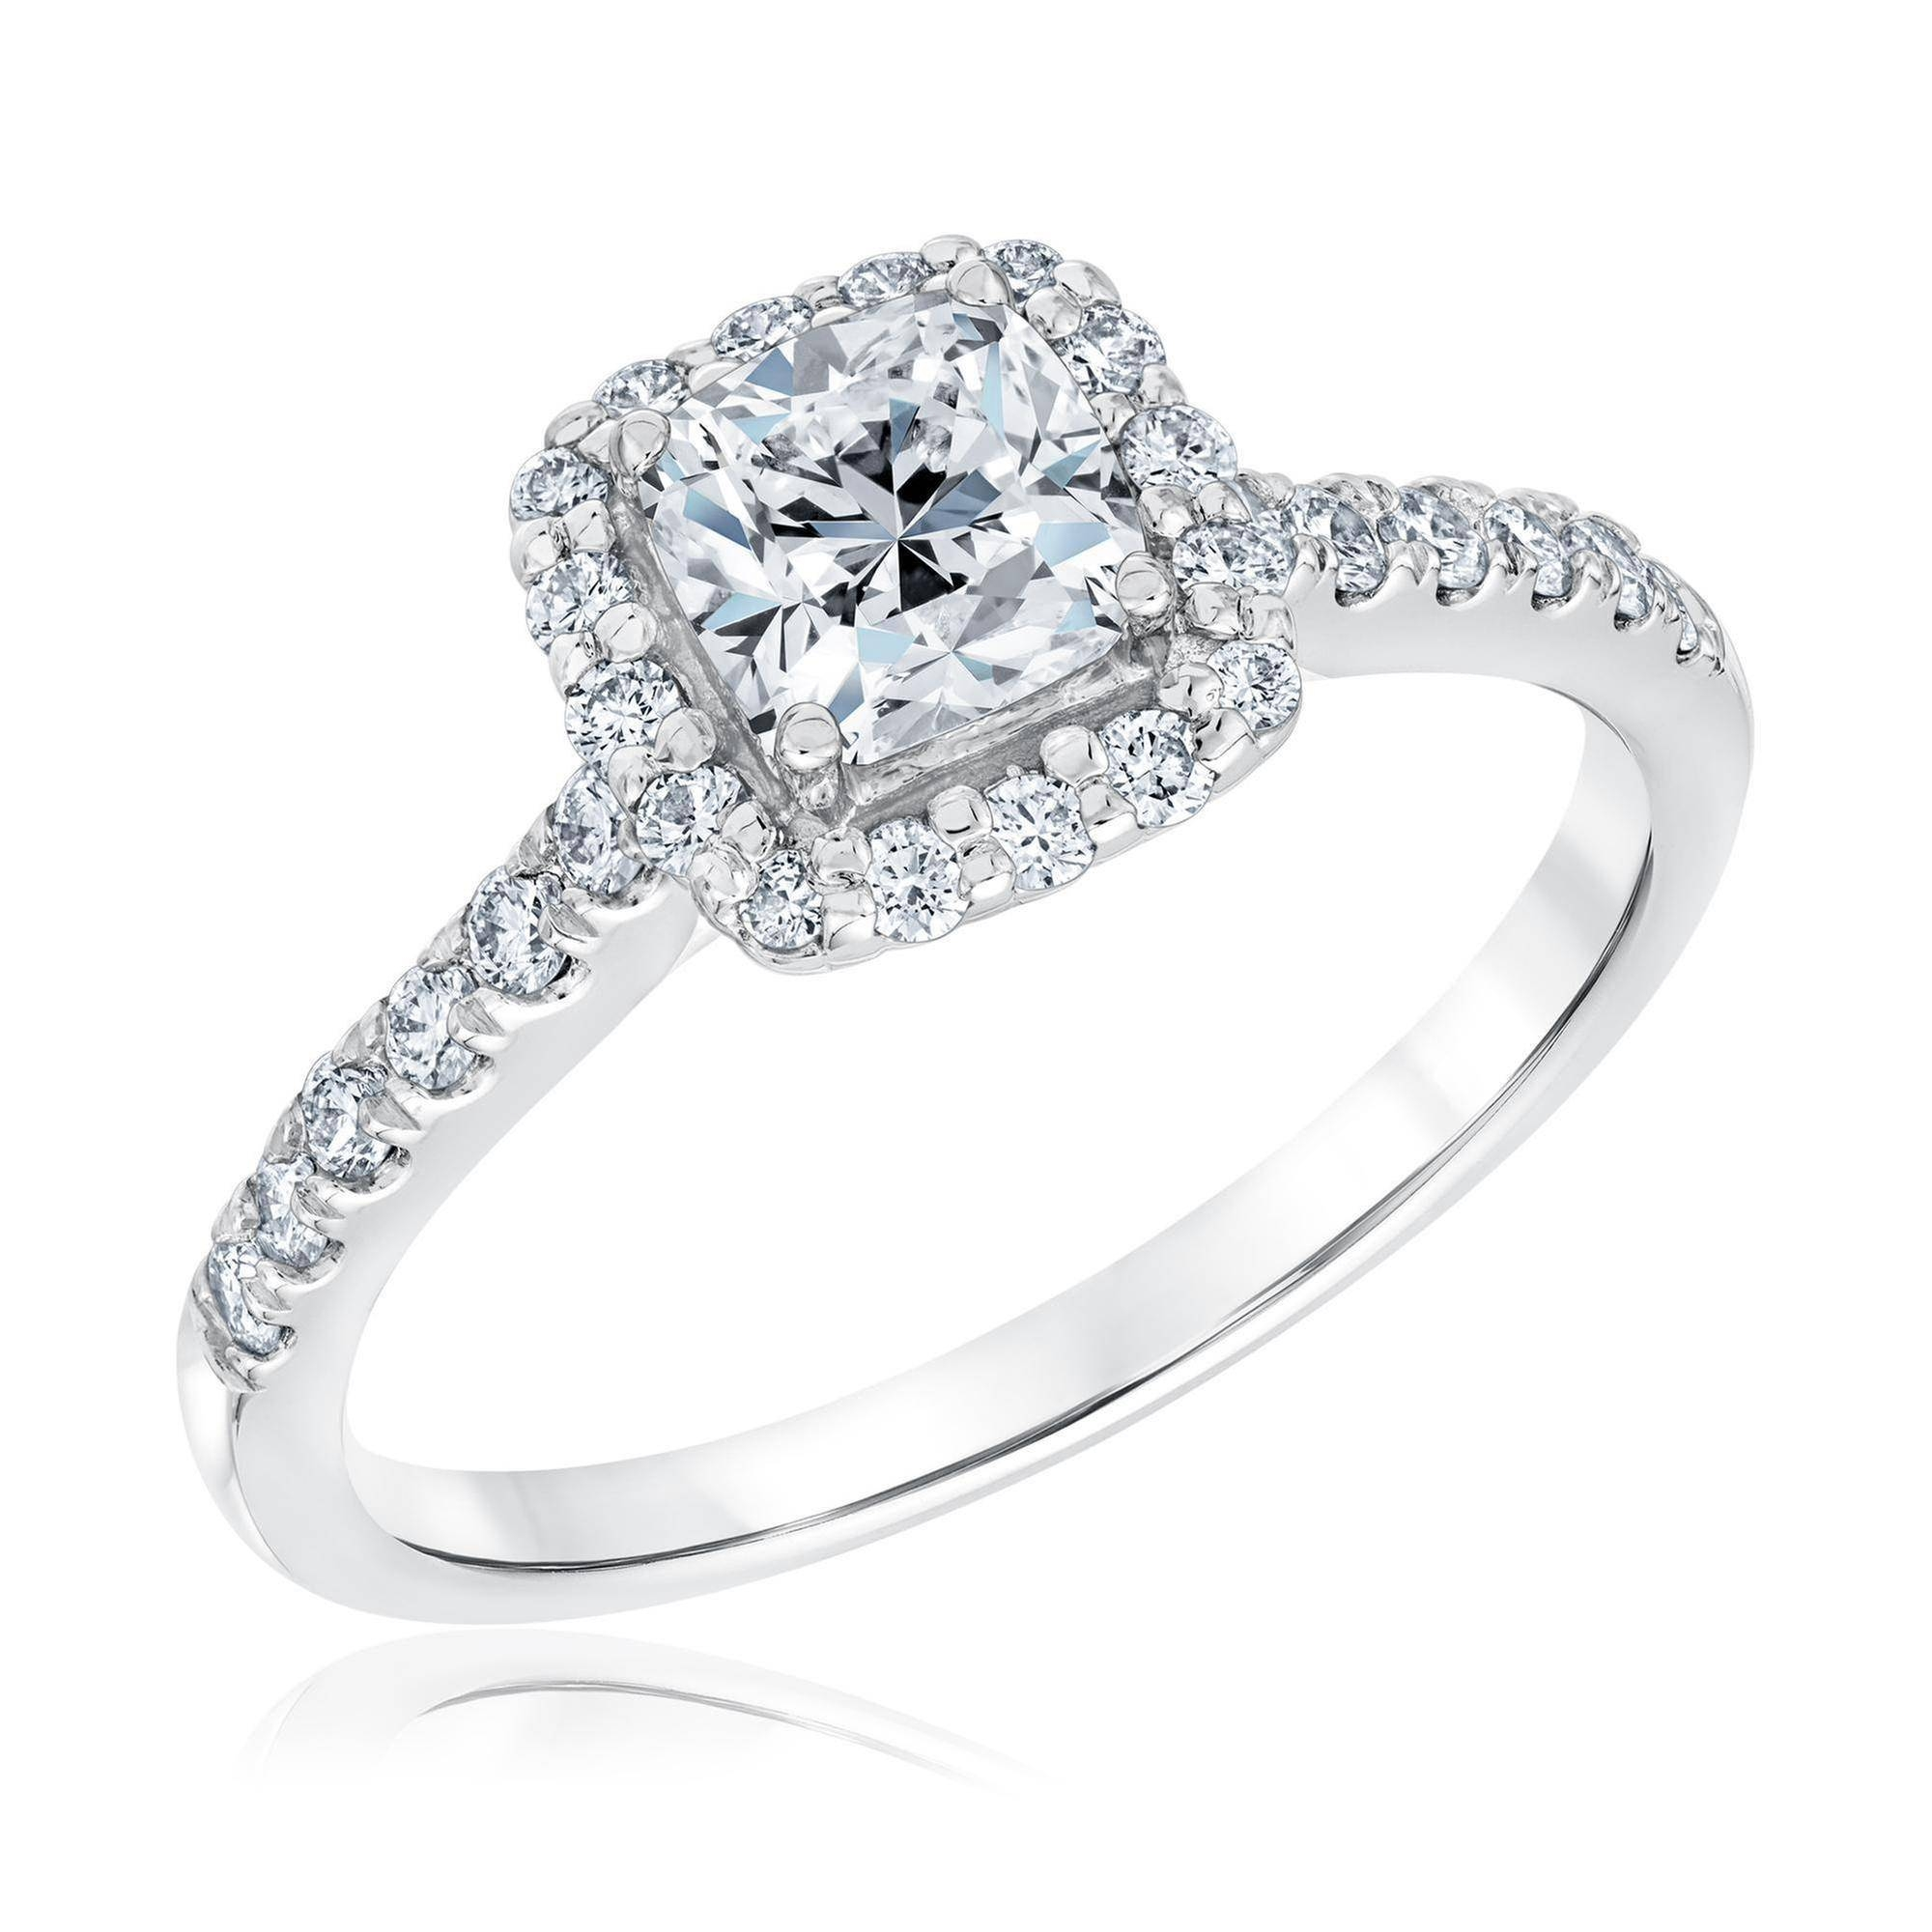 Rings Page 1 | Reeds Jewelers Within Most Popular 25 Wedding Anniversary Rings (View 17 of 25)